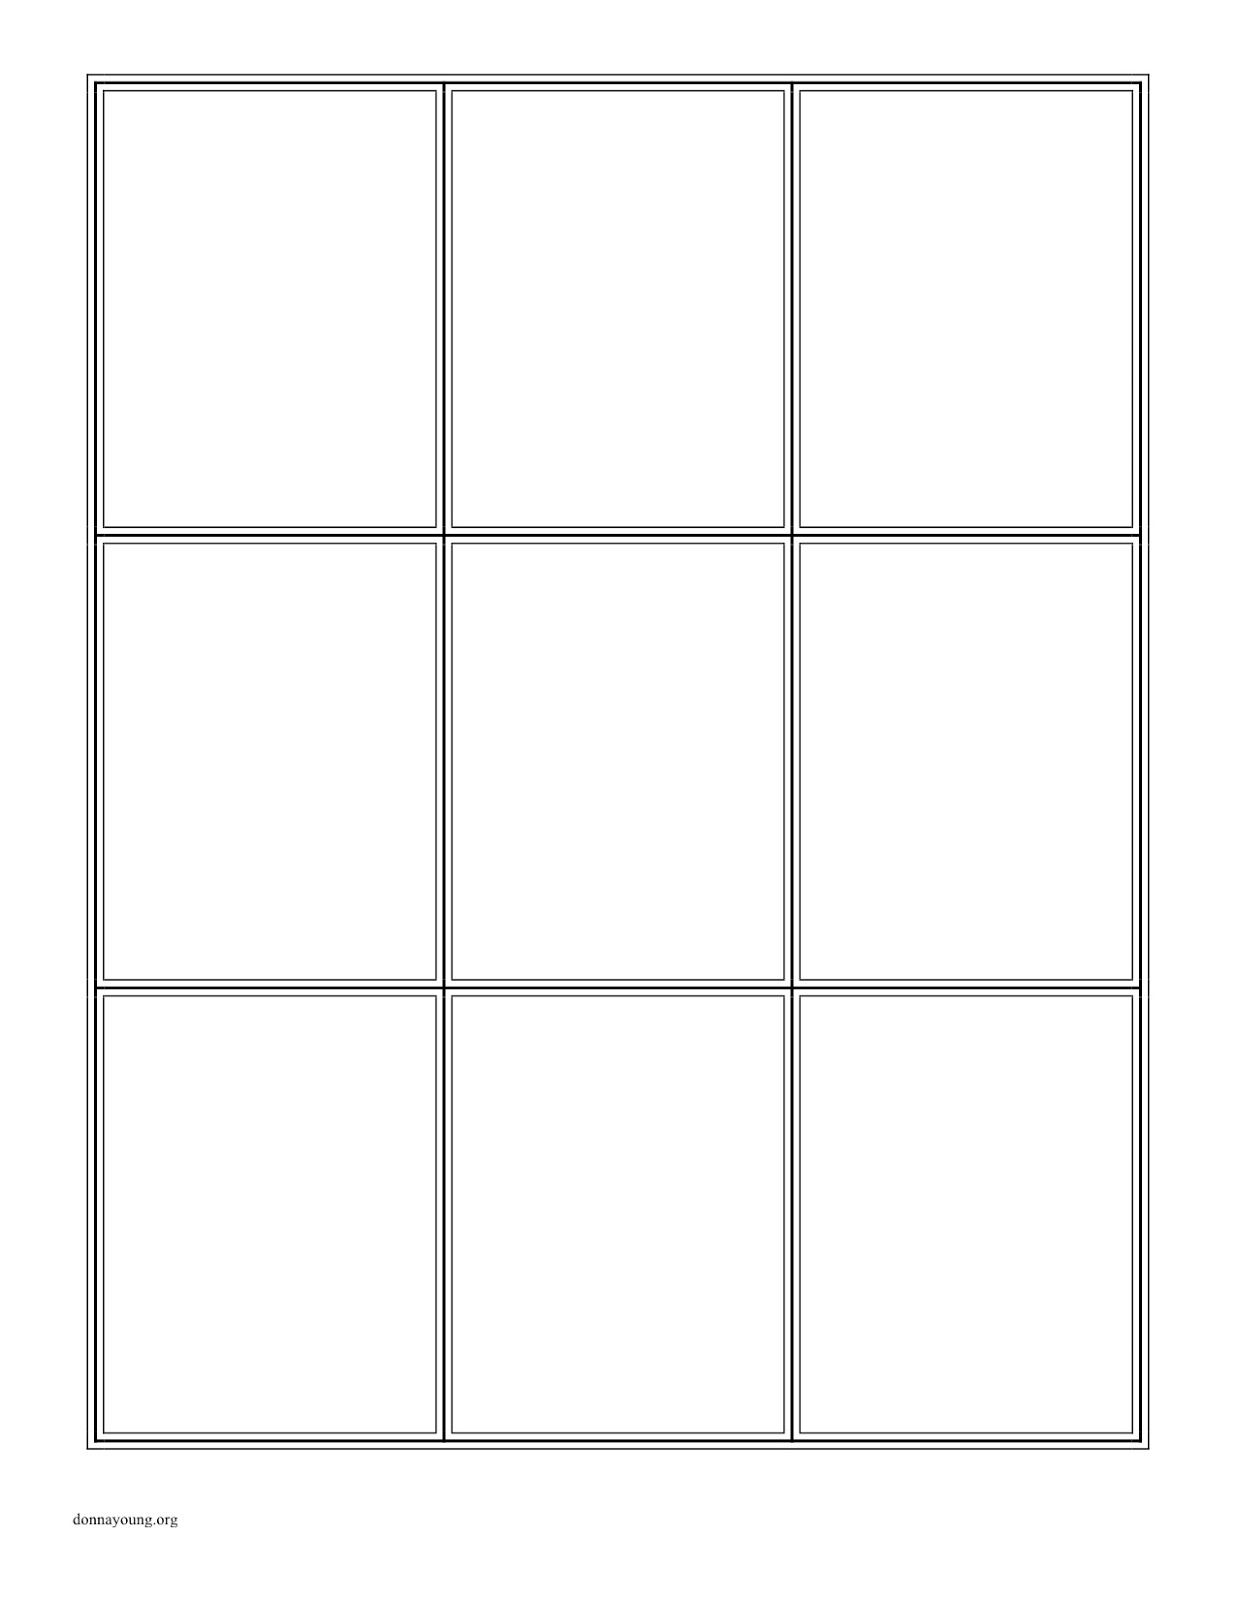 Best Photos Of Game Card Maker Template - Board Game Blank Intended For Card Game Template Maker